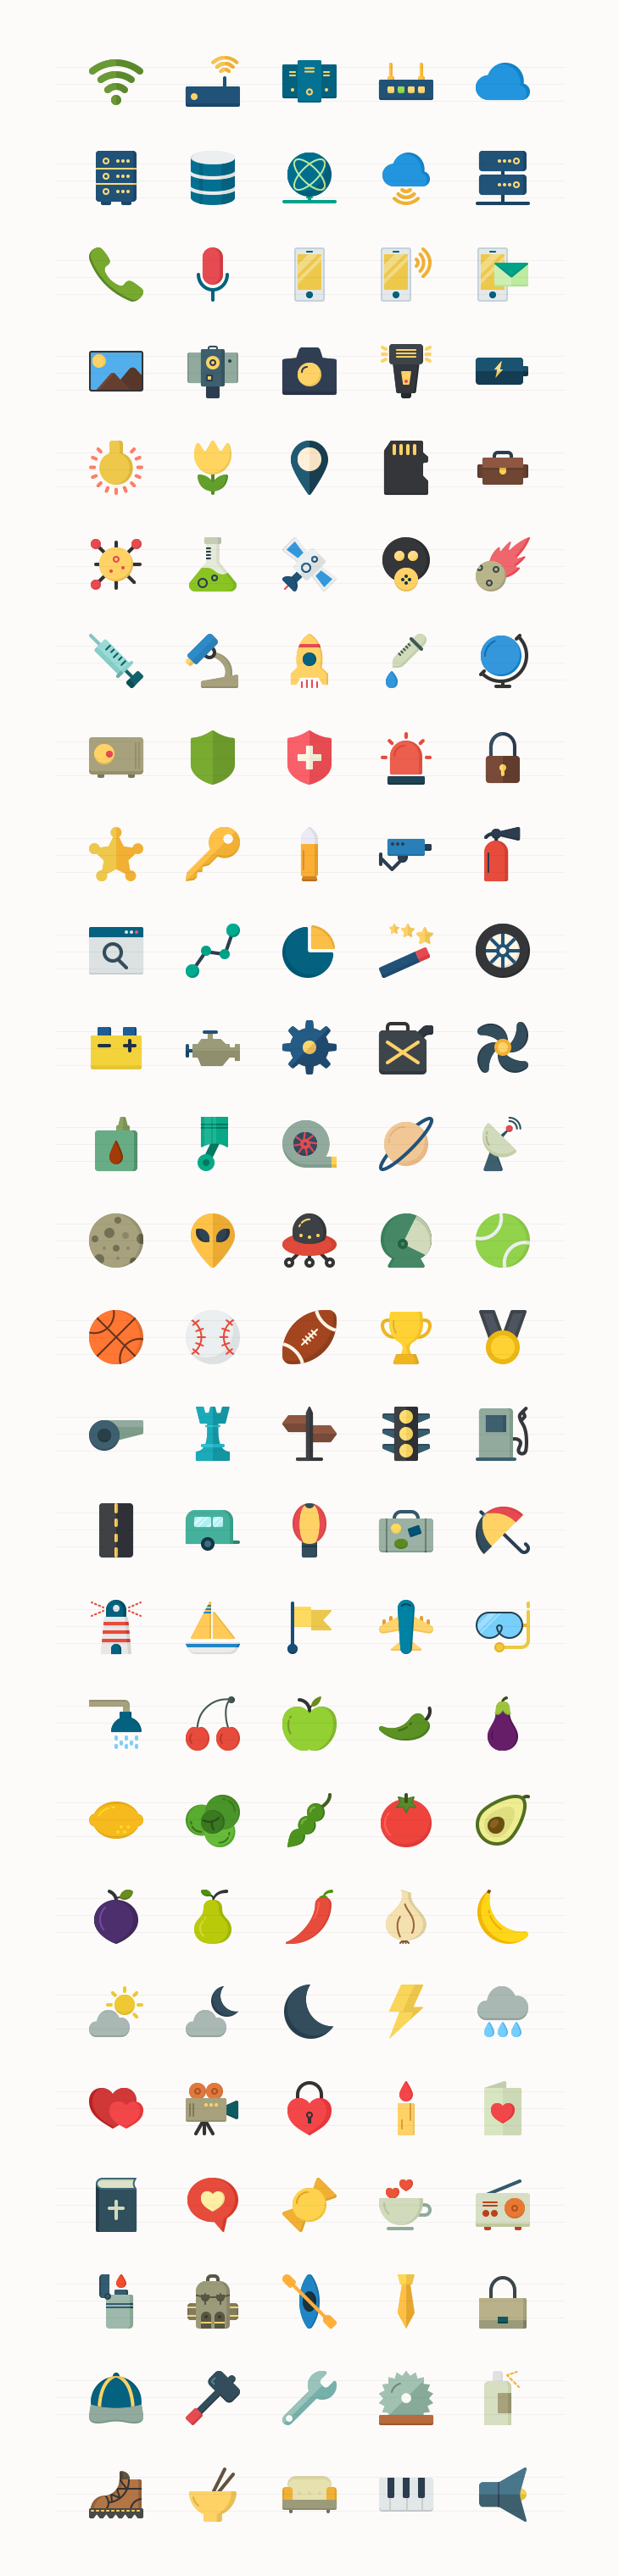 330-flat-vector-icons-dreamstale-3